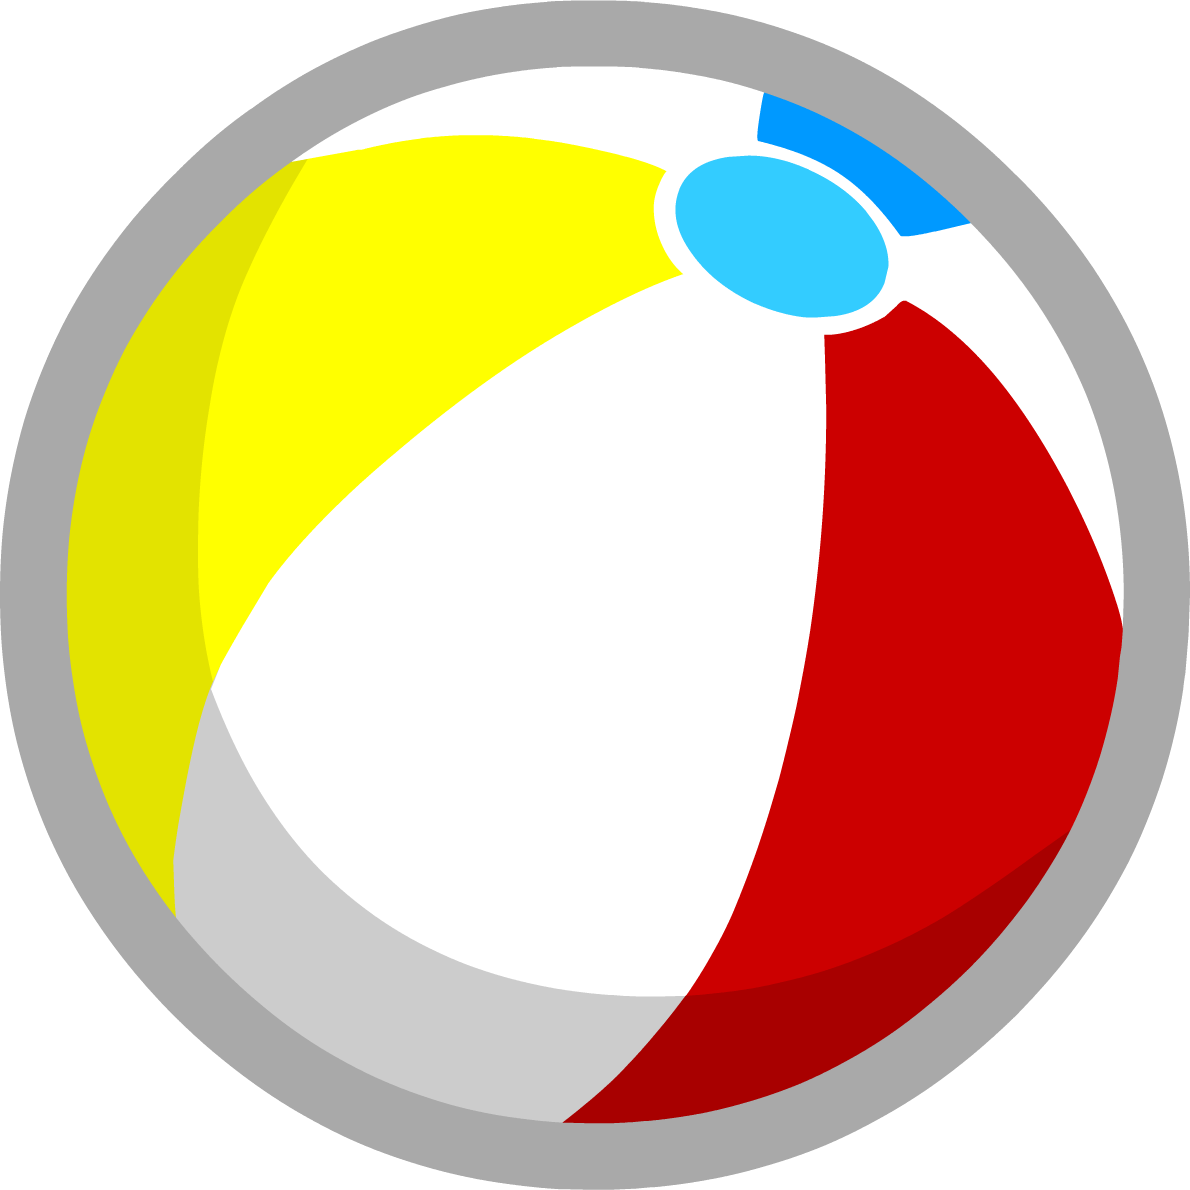 Image jam emoticons ball. Beach emoji png picture royalty free stock